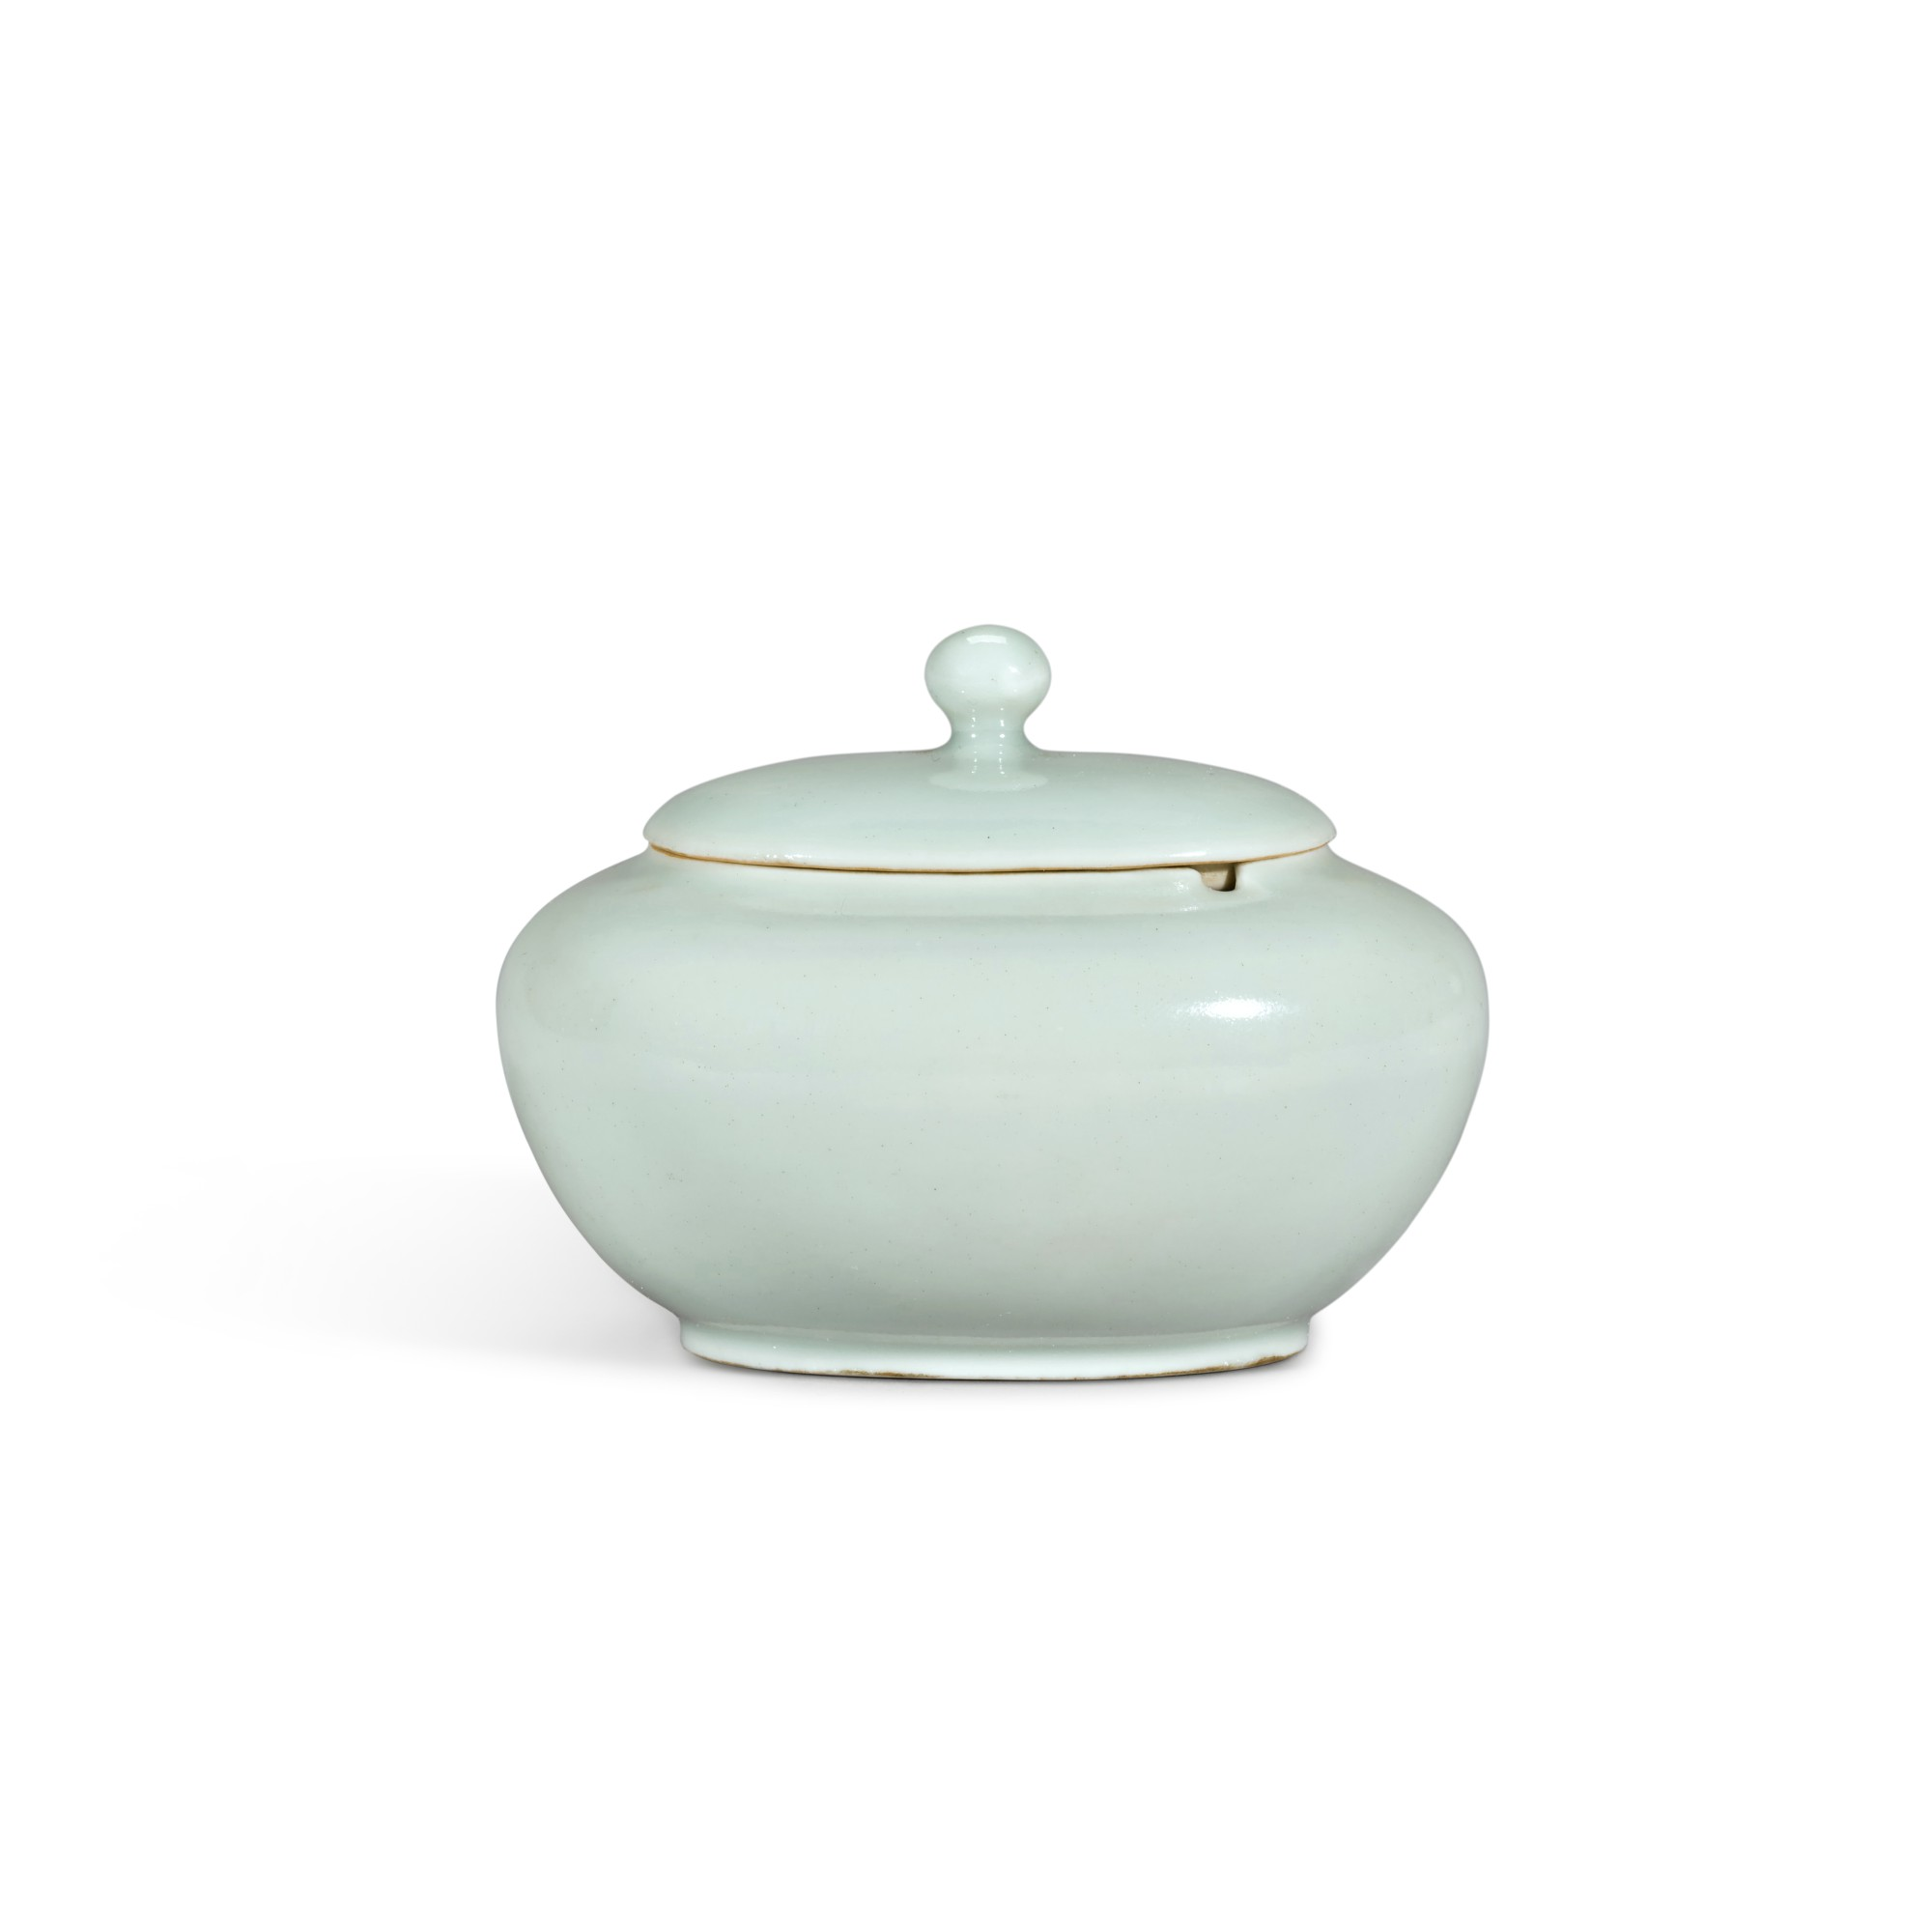 An extremely rare and fine small celadon-glazed jar and cover, Seal mark and period of Yongzheng   清雍正 粉青釉水盂連蓋 《雍正年製》款